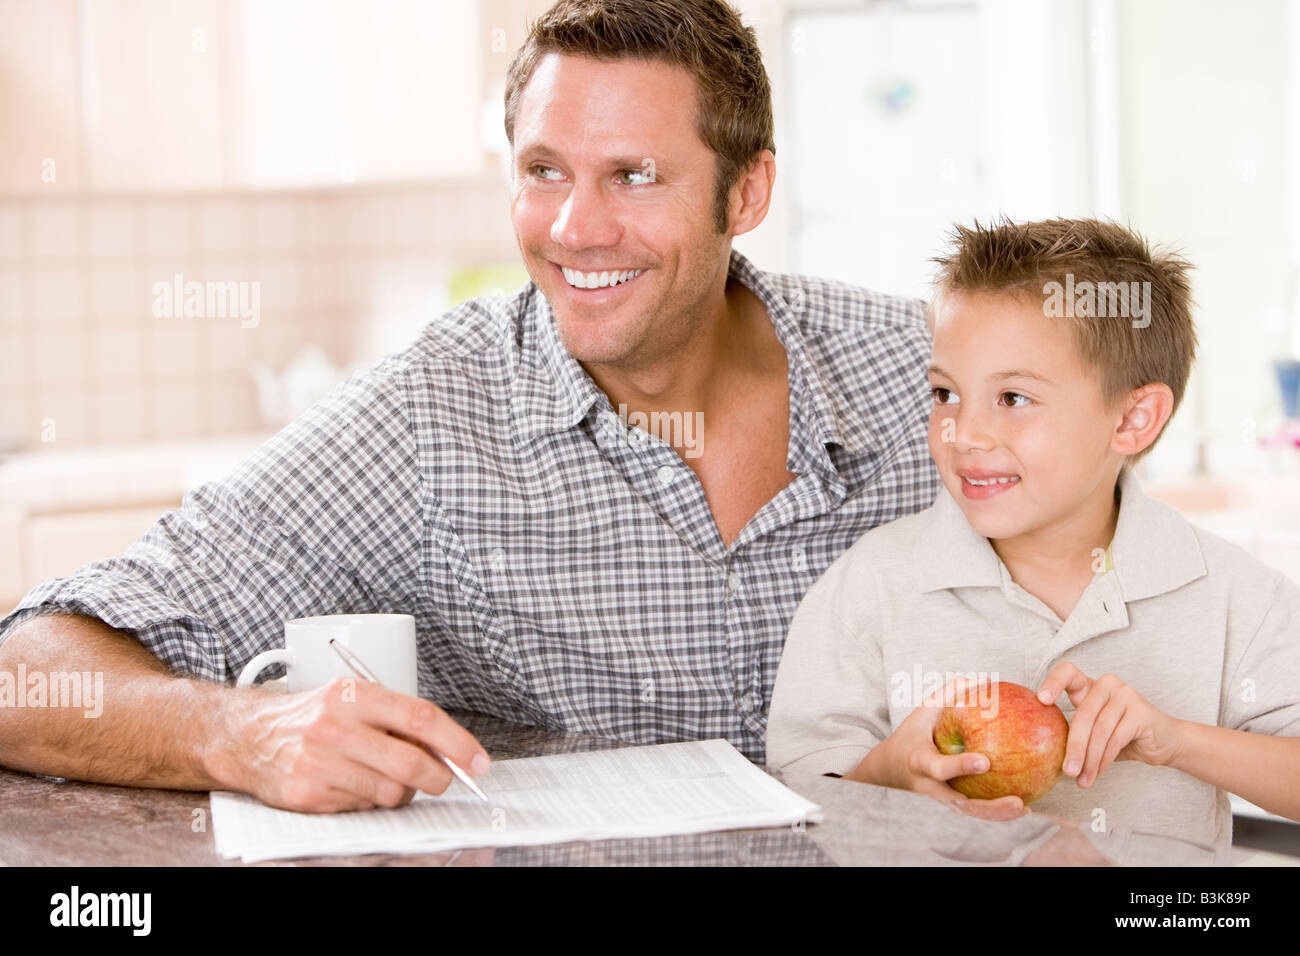 Man and young boy in kitchen with newspaper apple and coffee smiling - Stock Image